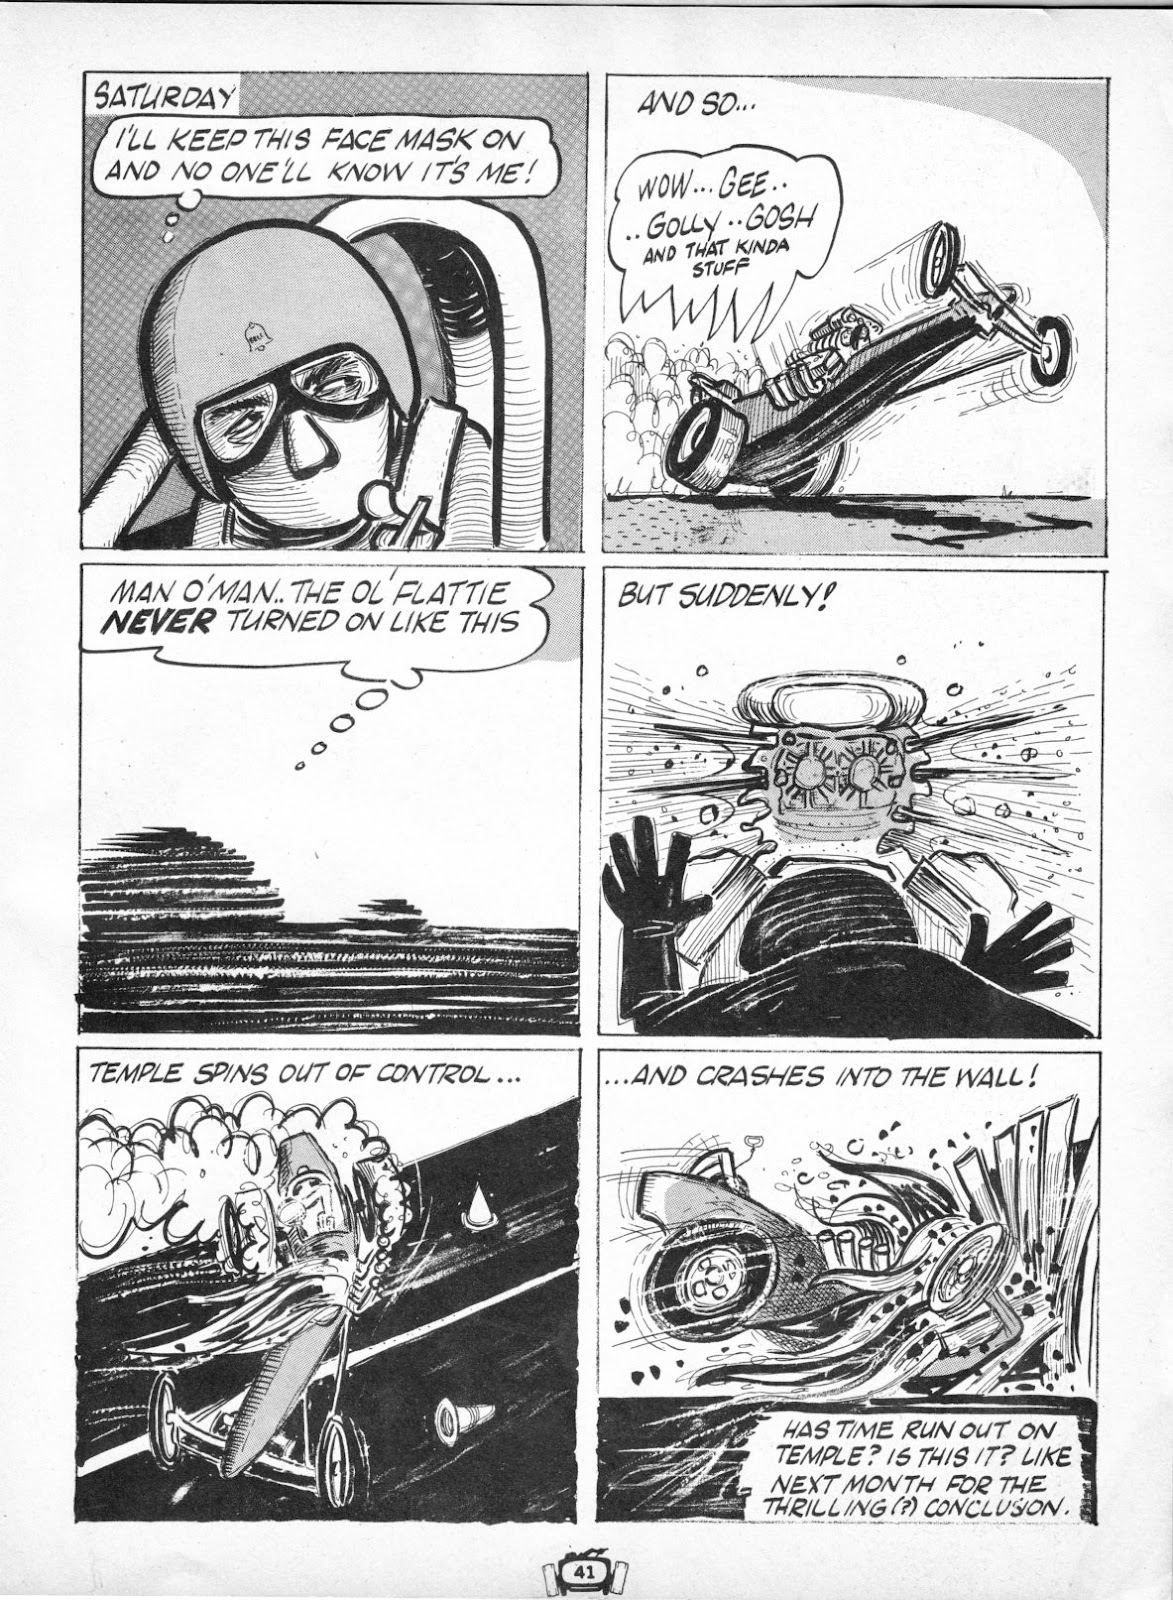 Drag Cartoons issue 7 - Page 41